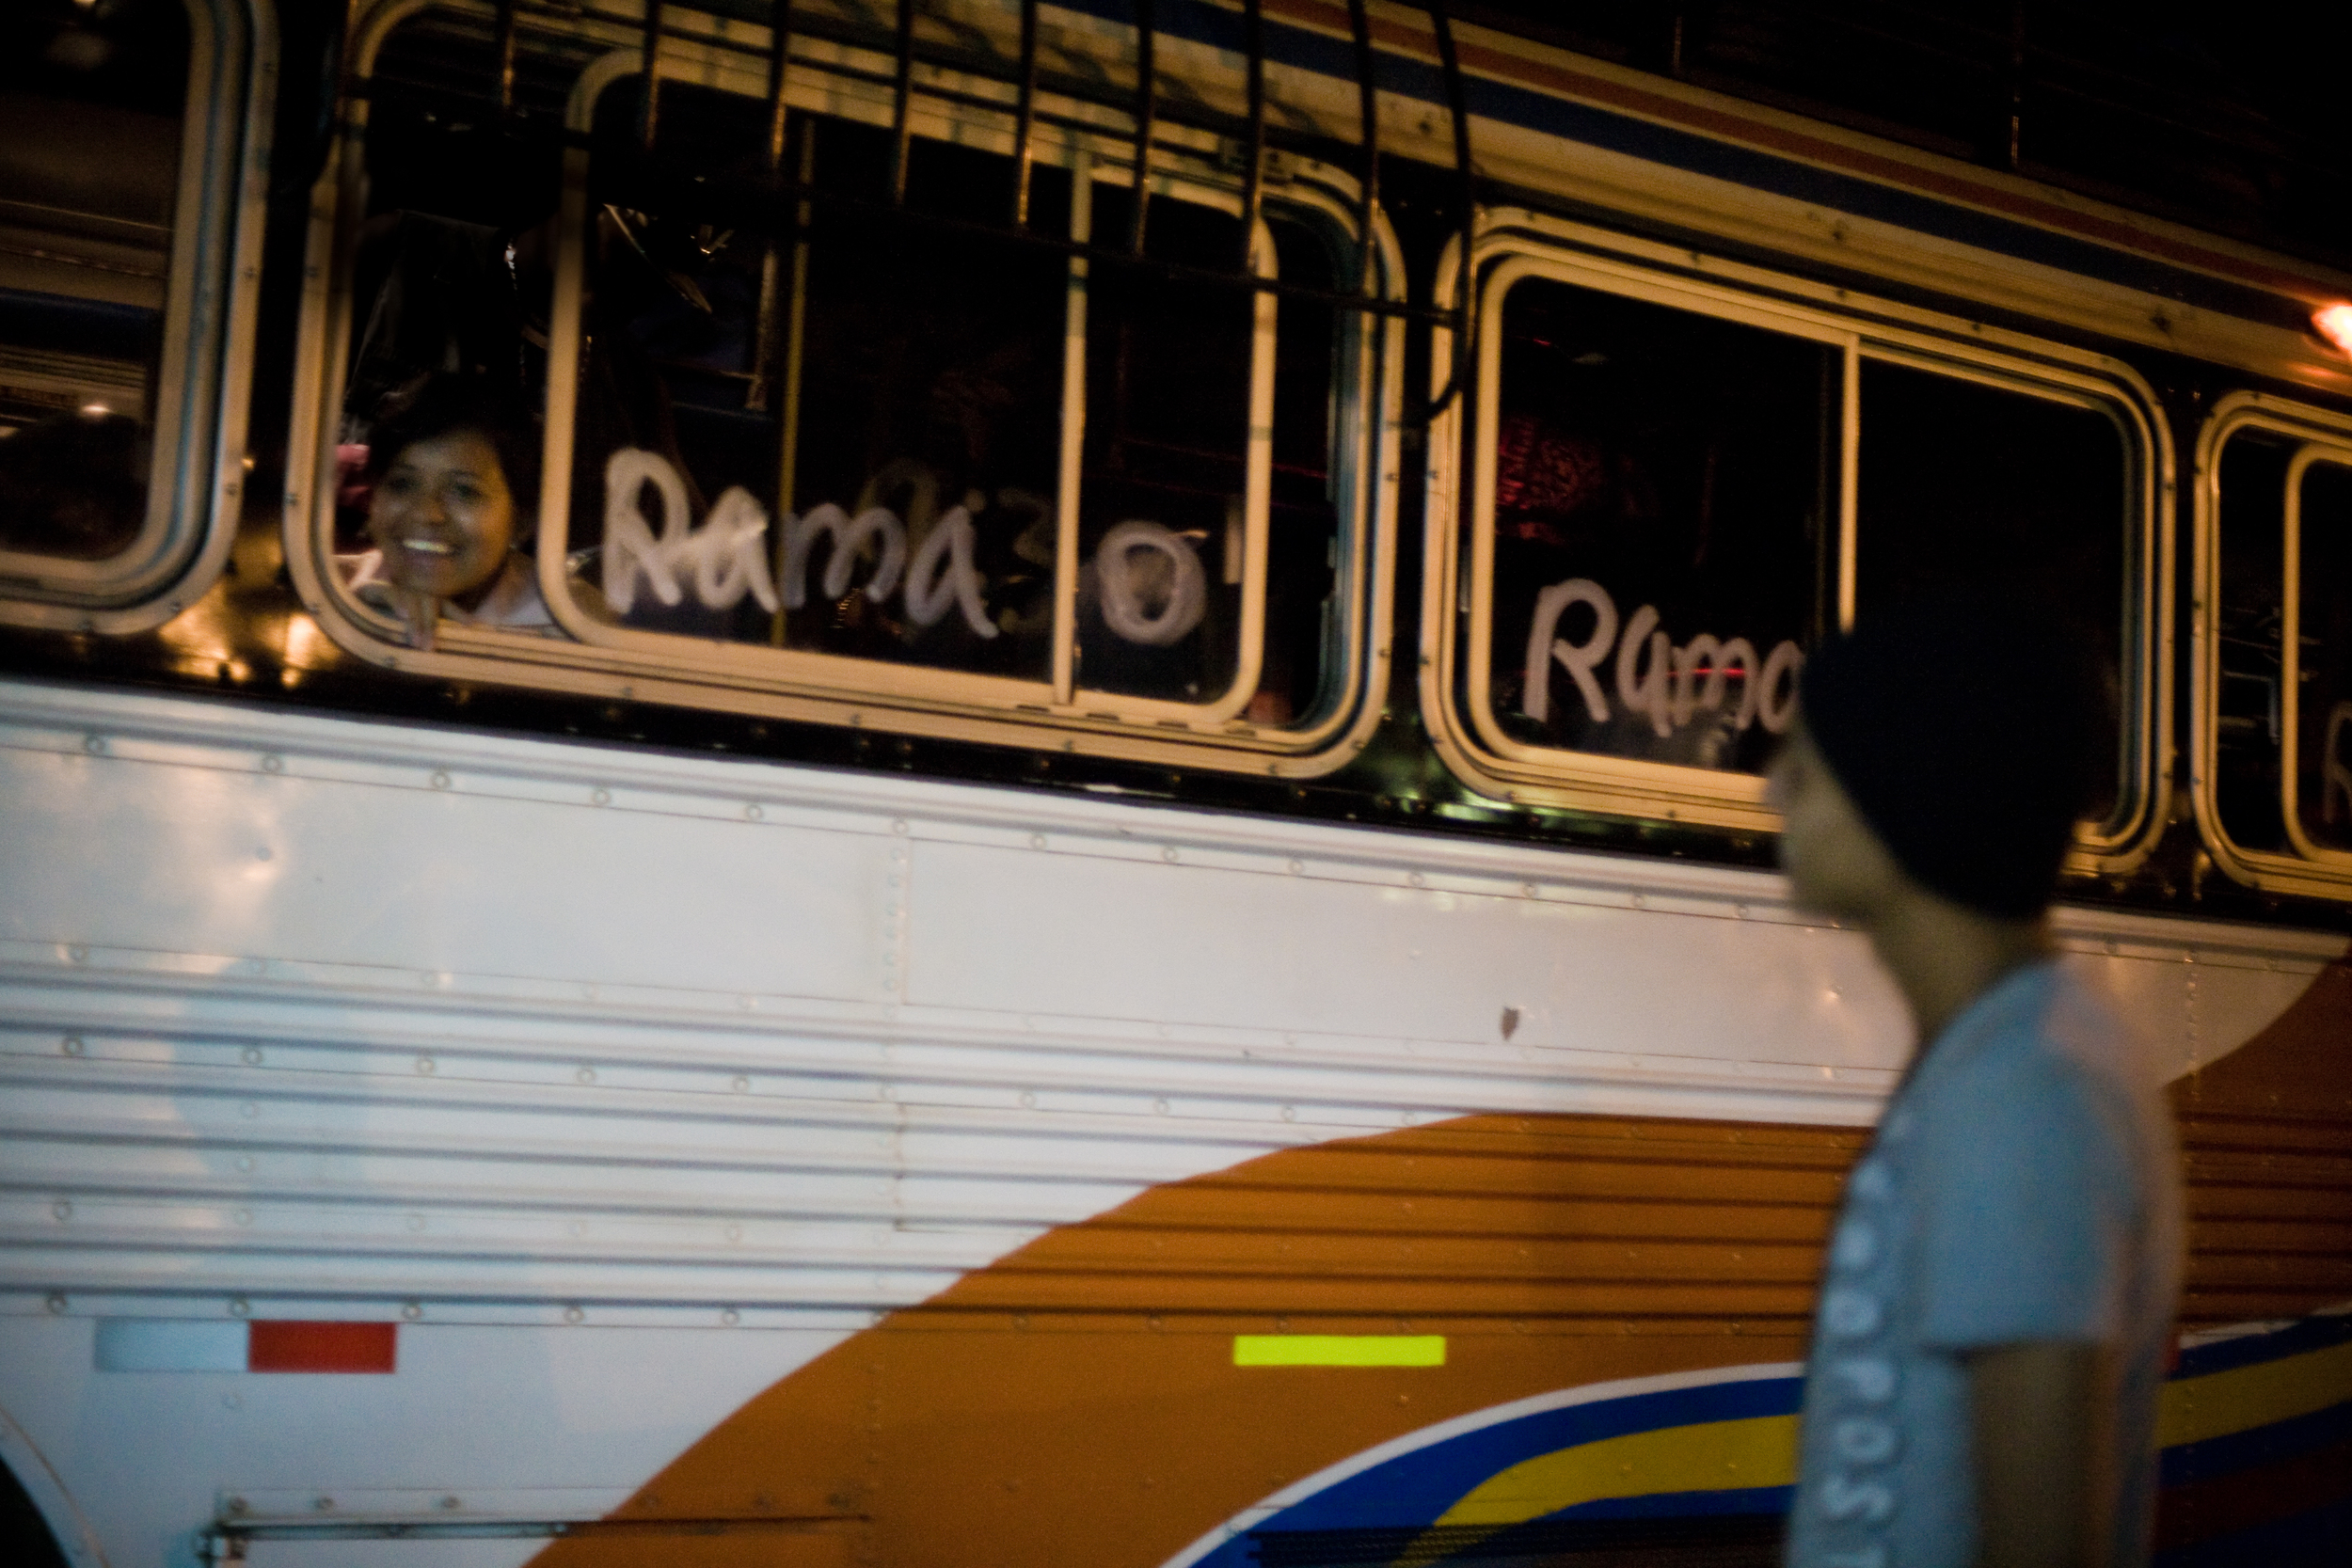 Travel by land: The night bus to El Rama. It leaves Managua at 9.30pm, lurching its way to the Rama docks. Getting sleep on the bus is highly unlikely. We arrive in Rama at 3am.